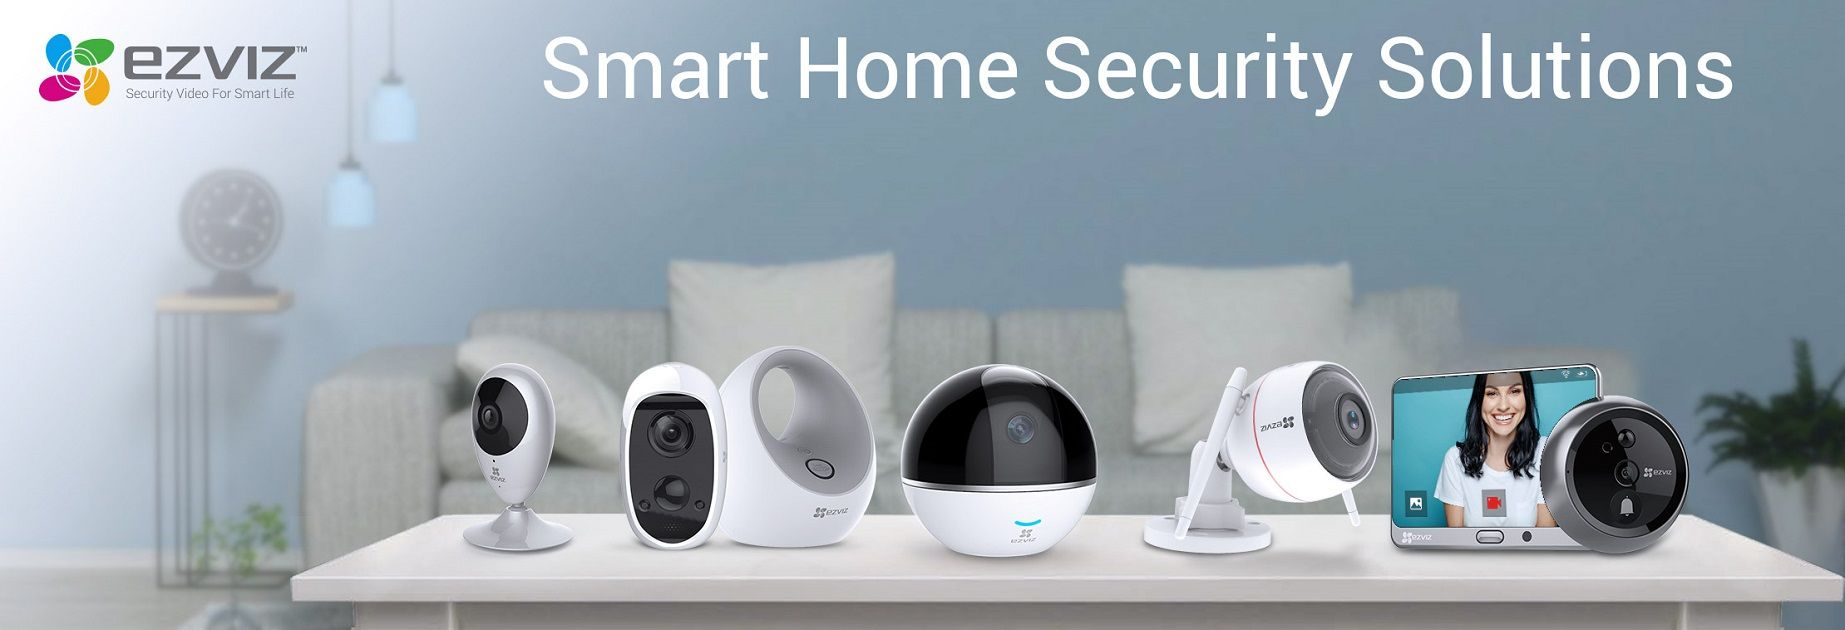 EZVIZ - HOME SECURITY